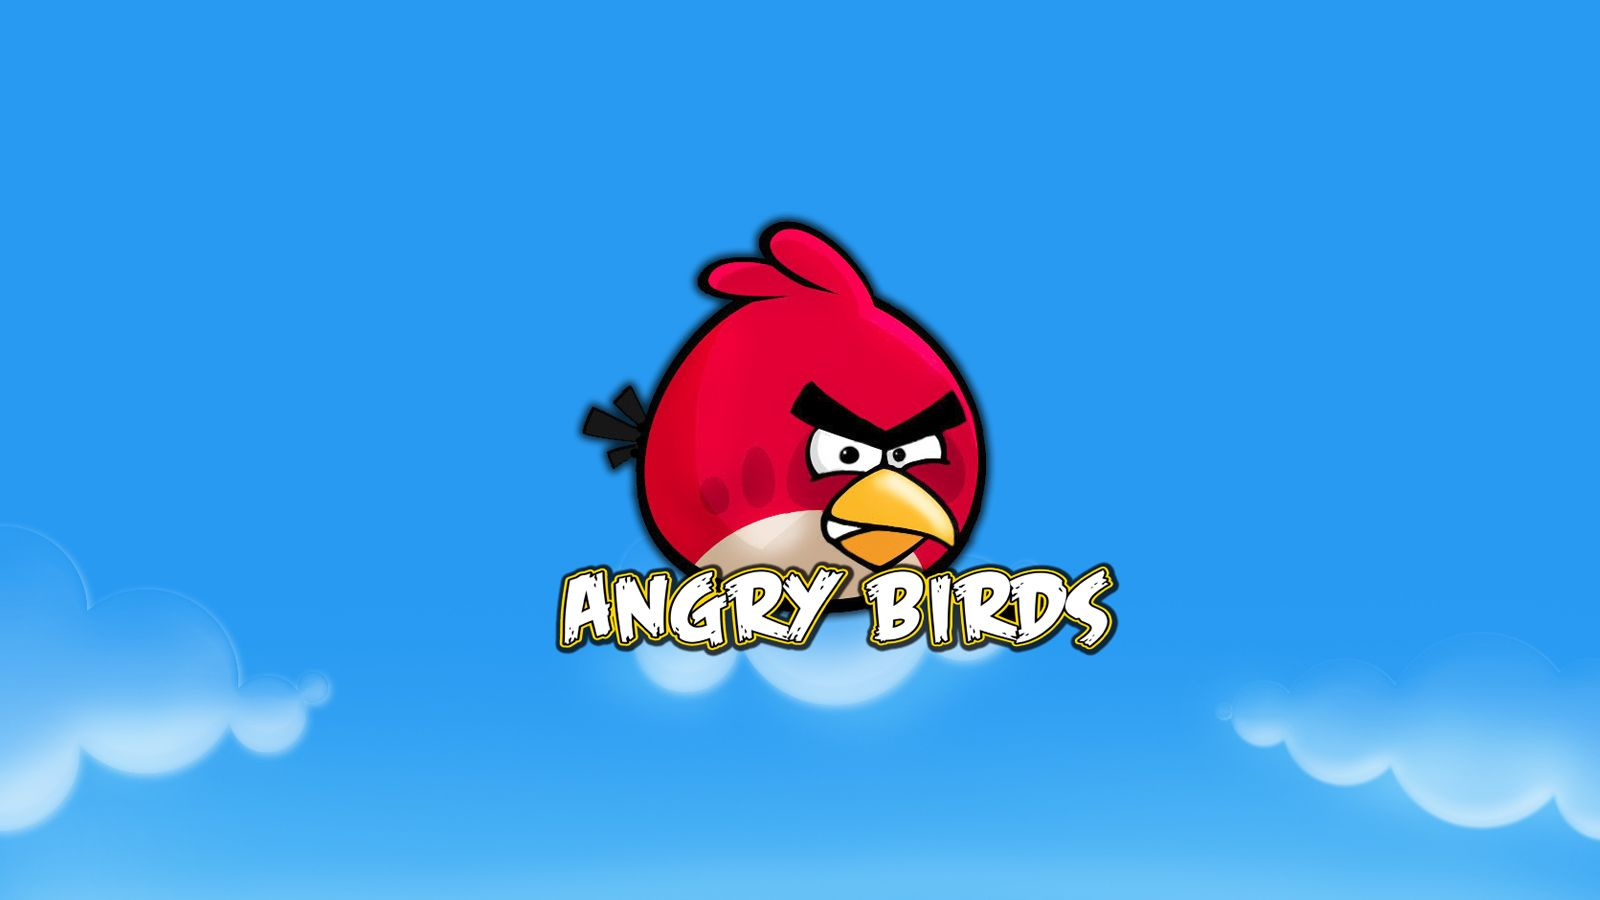 Download Wallpaper High Resolution Angry - f5e96dac4193bfcca2e45872b8846d22  You Should Have_37118.jpg